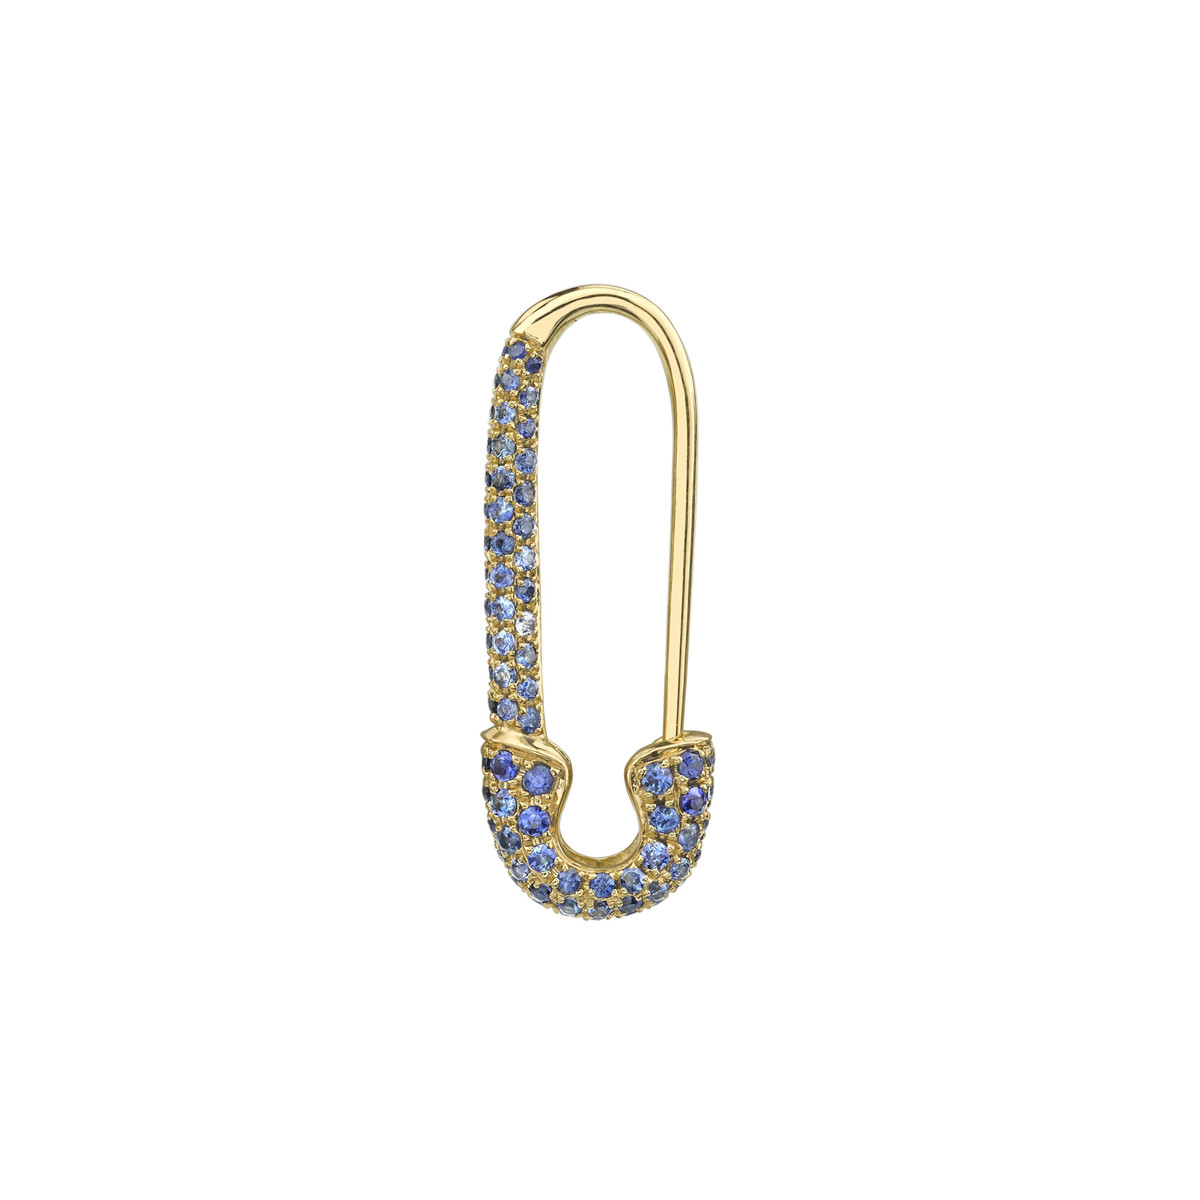 18k Yellow Gold & Sapphire Safety Pin Earring